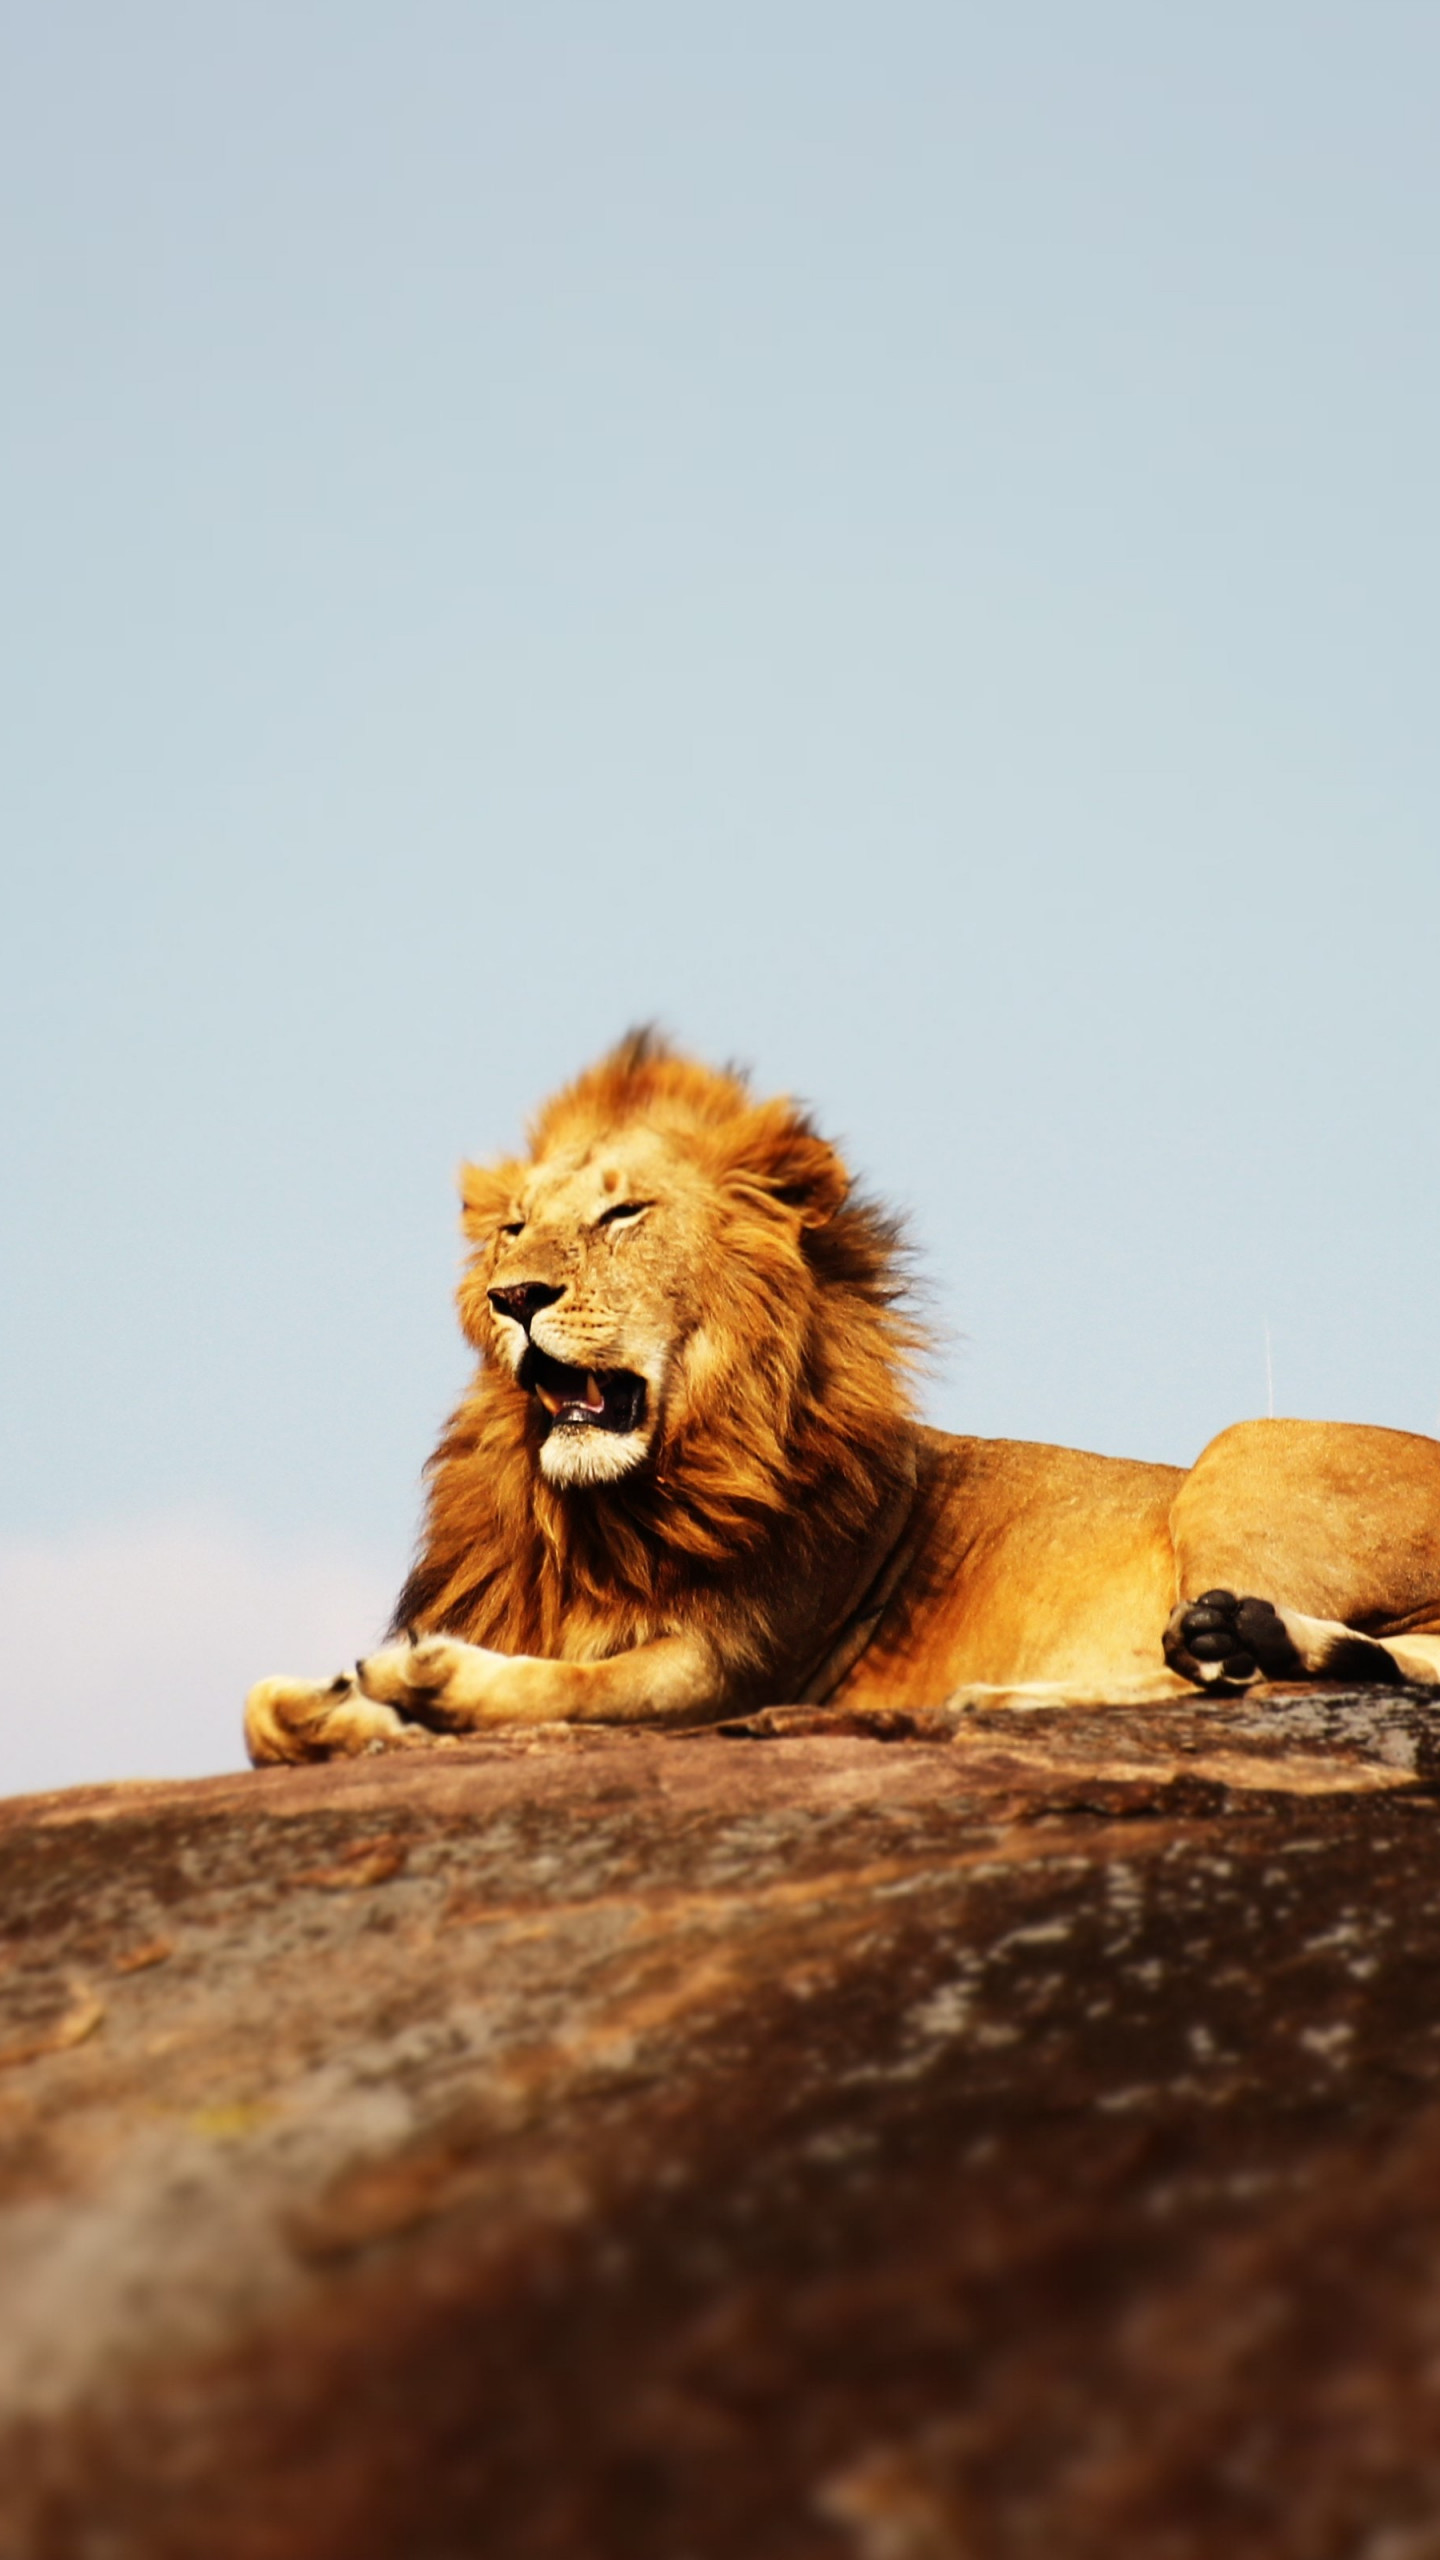 Lion in Serengeti National Park wallpaper 1440x2560